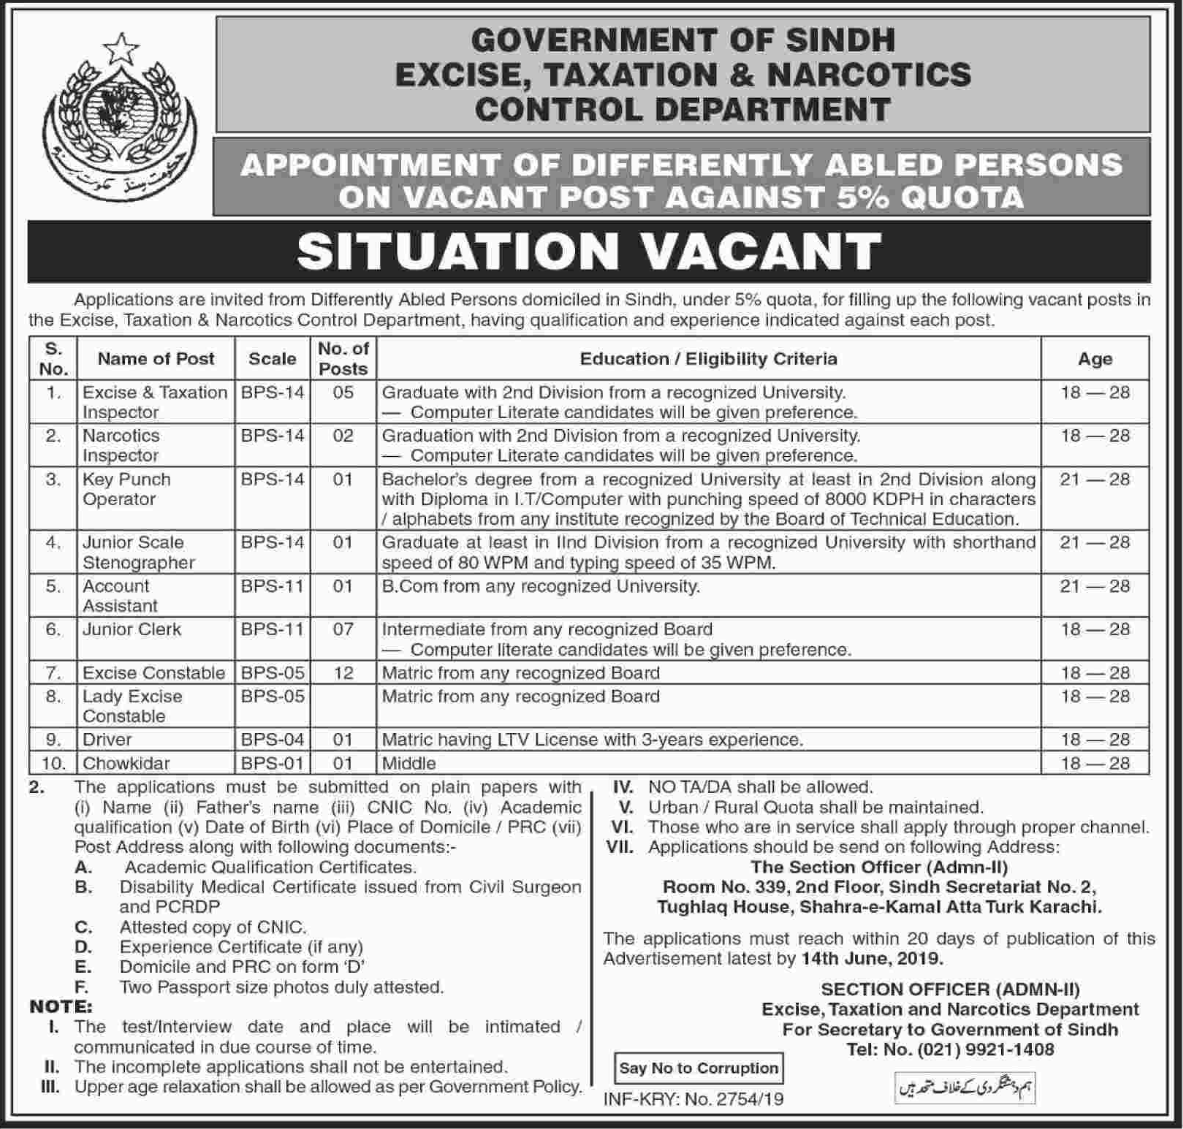 excise taxation and narcotics control department,excise and taxation department,excise taxation jobs,excise taxation jobs 2018,excise and taxation,general excise taxation jobs,general excise taxation jobs 2018,excise and taxation department peshawar jobs 2019,government jobs,excise taxation,excise taxation department,excise,excise taxation narcotics control punjab,excise inspector